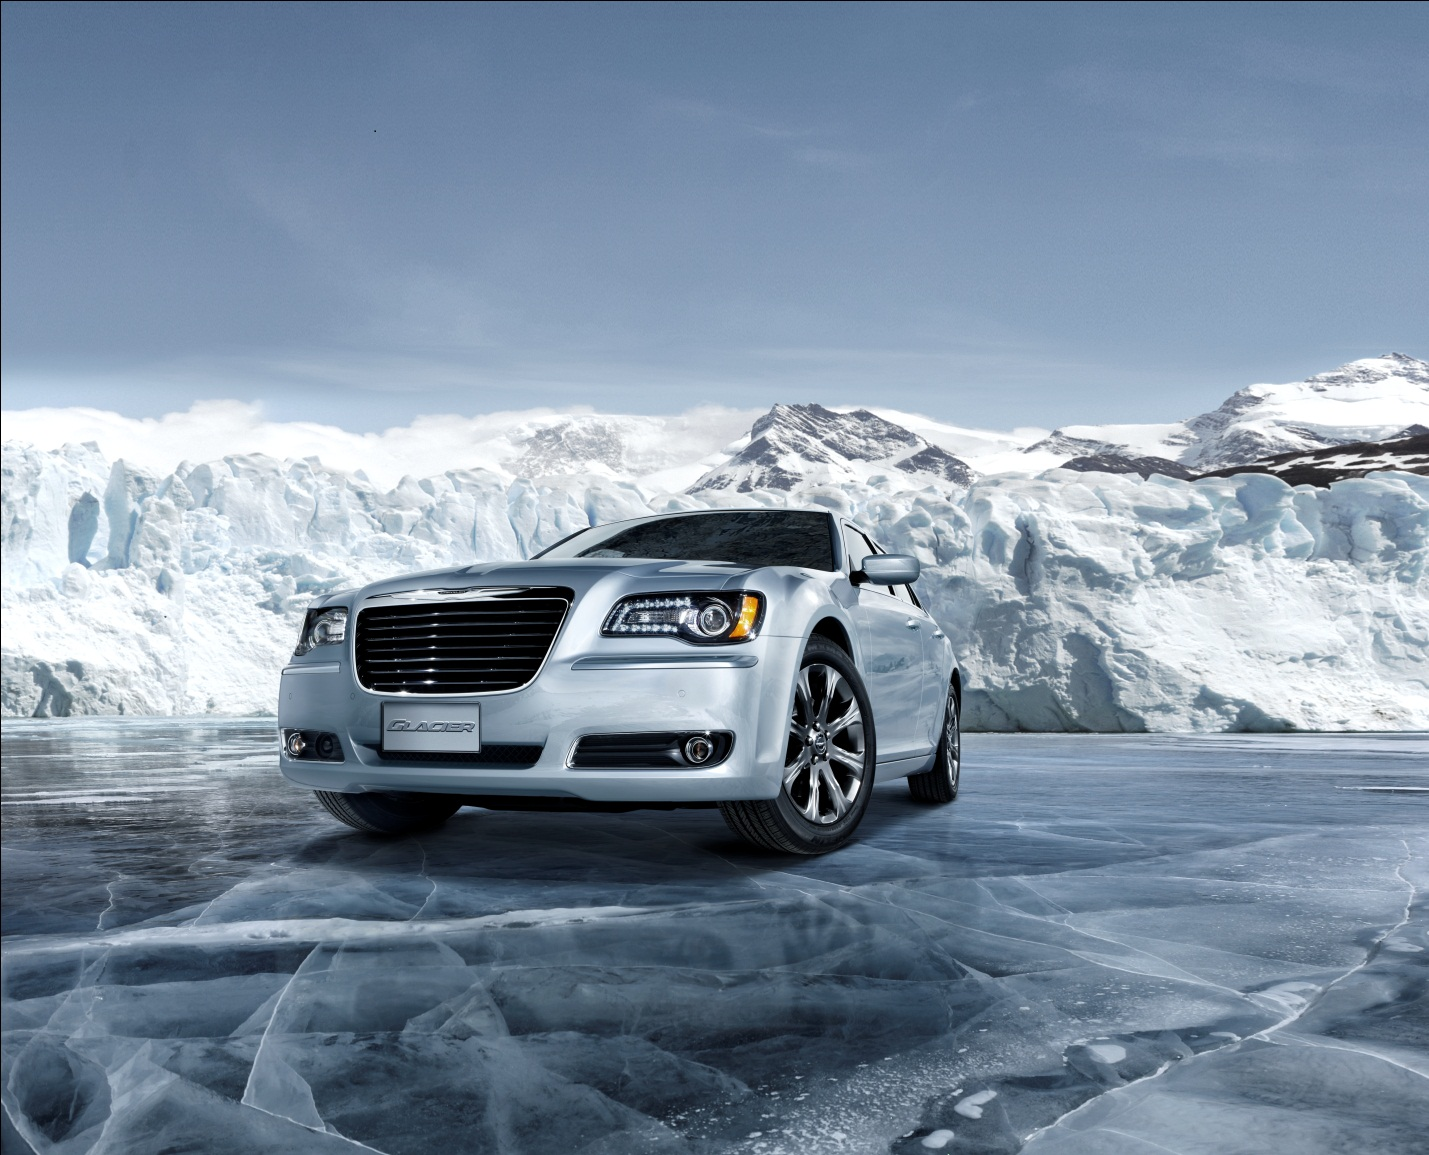 the happy car salesman 2013 chrysler 300 glacier edition first drive and new awd tech demo. Black Bedroom Furniture Sets. Home Design Ideas